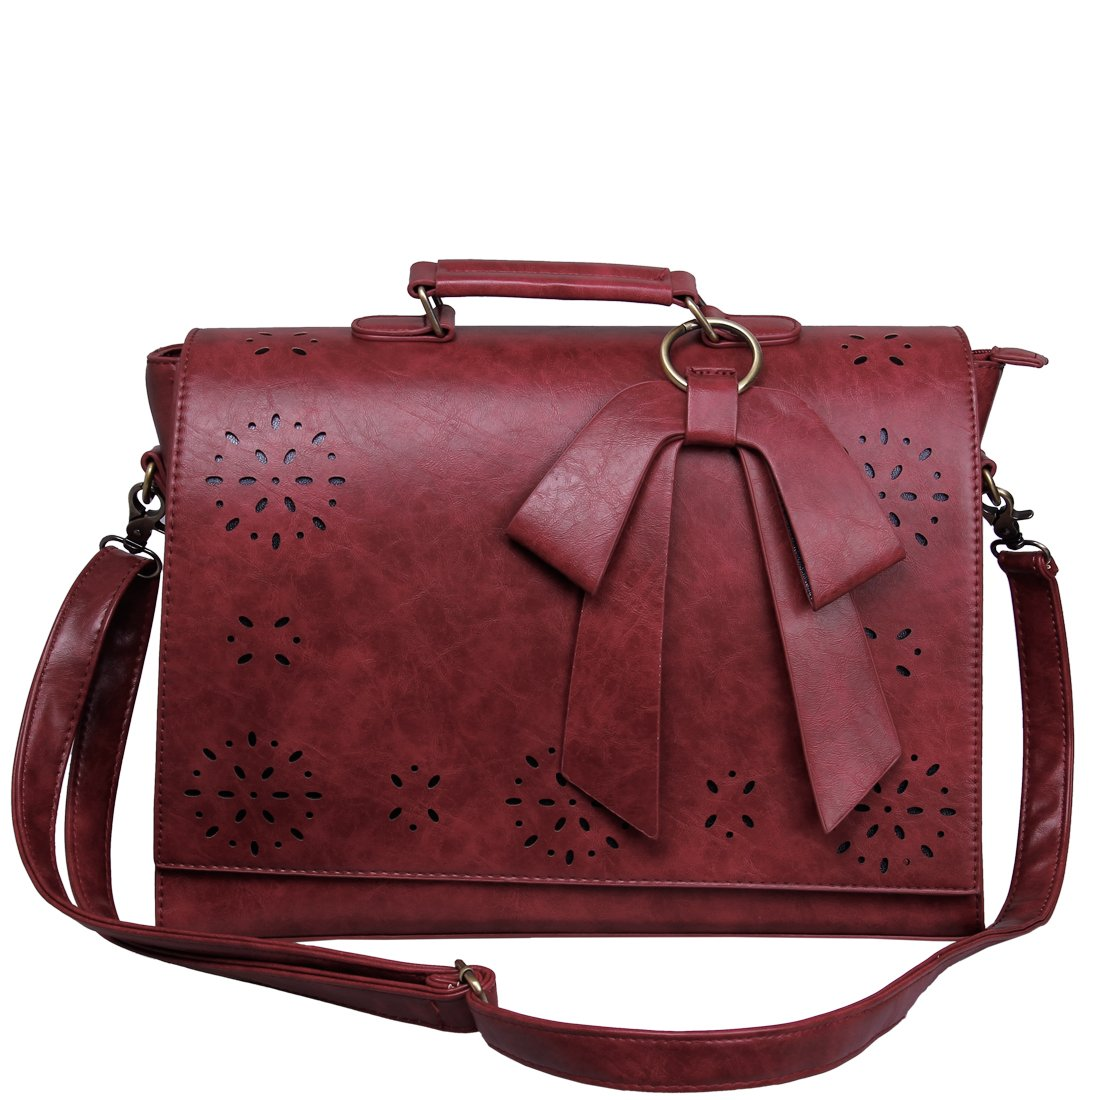 women vintage 14 laptop shoulder bag briefcase messenger faux leather handbag ebay. Black Bedroom Furniture Sets. Home Design Ideas